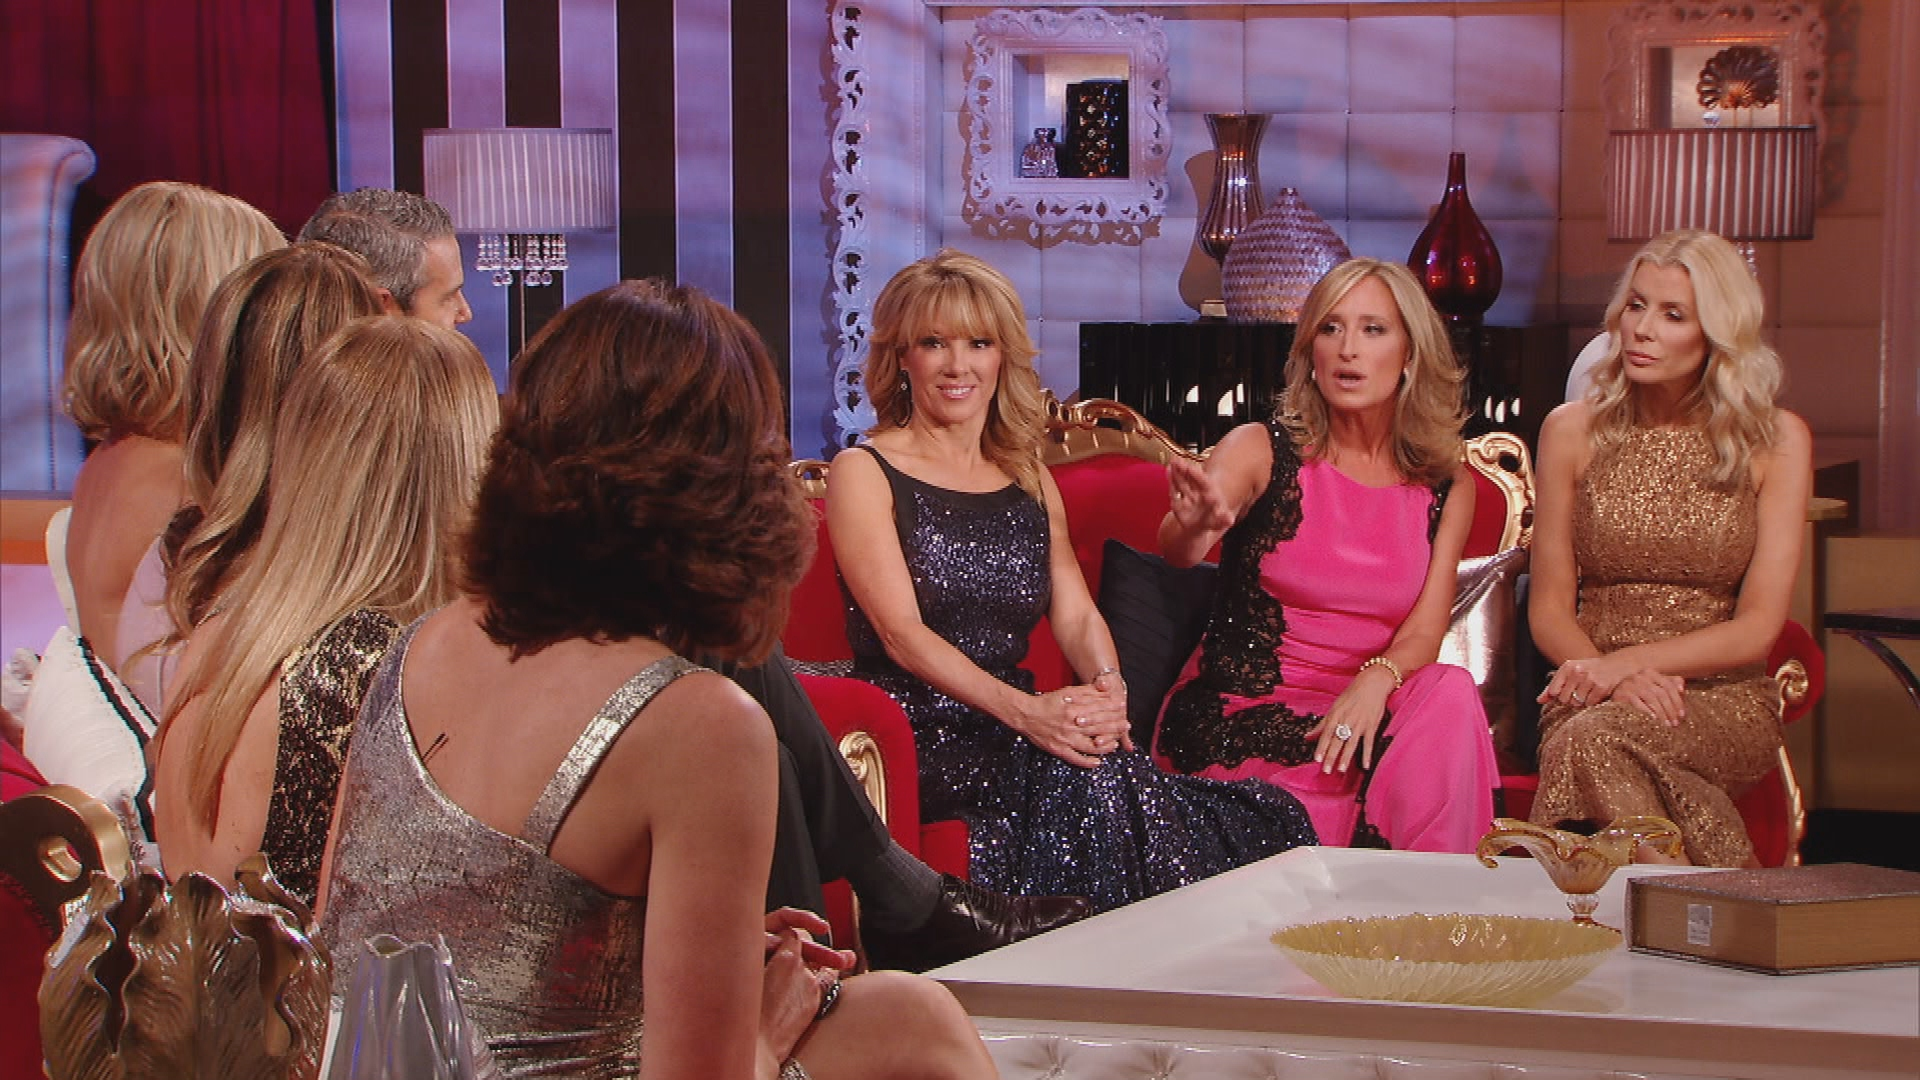 Where Does Sonja Morgan's Money Come From?